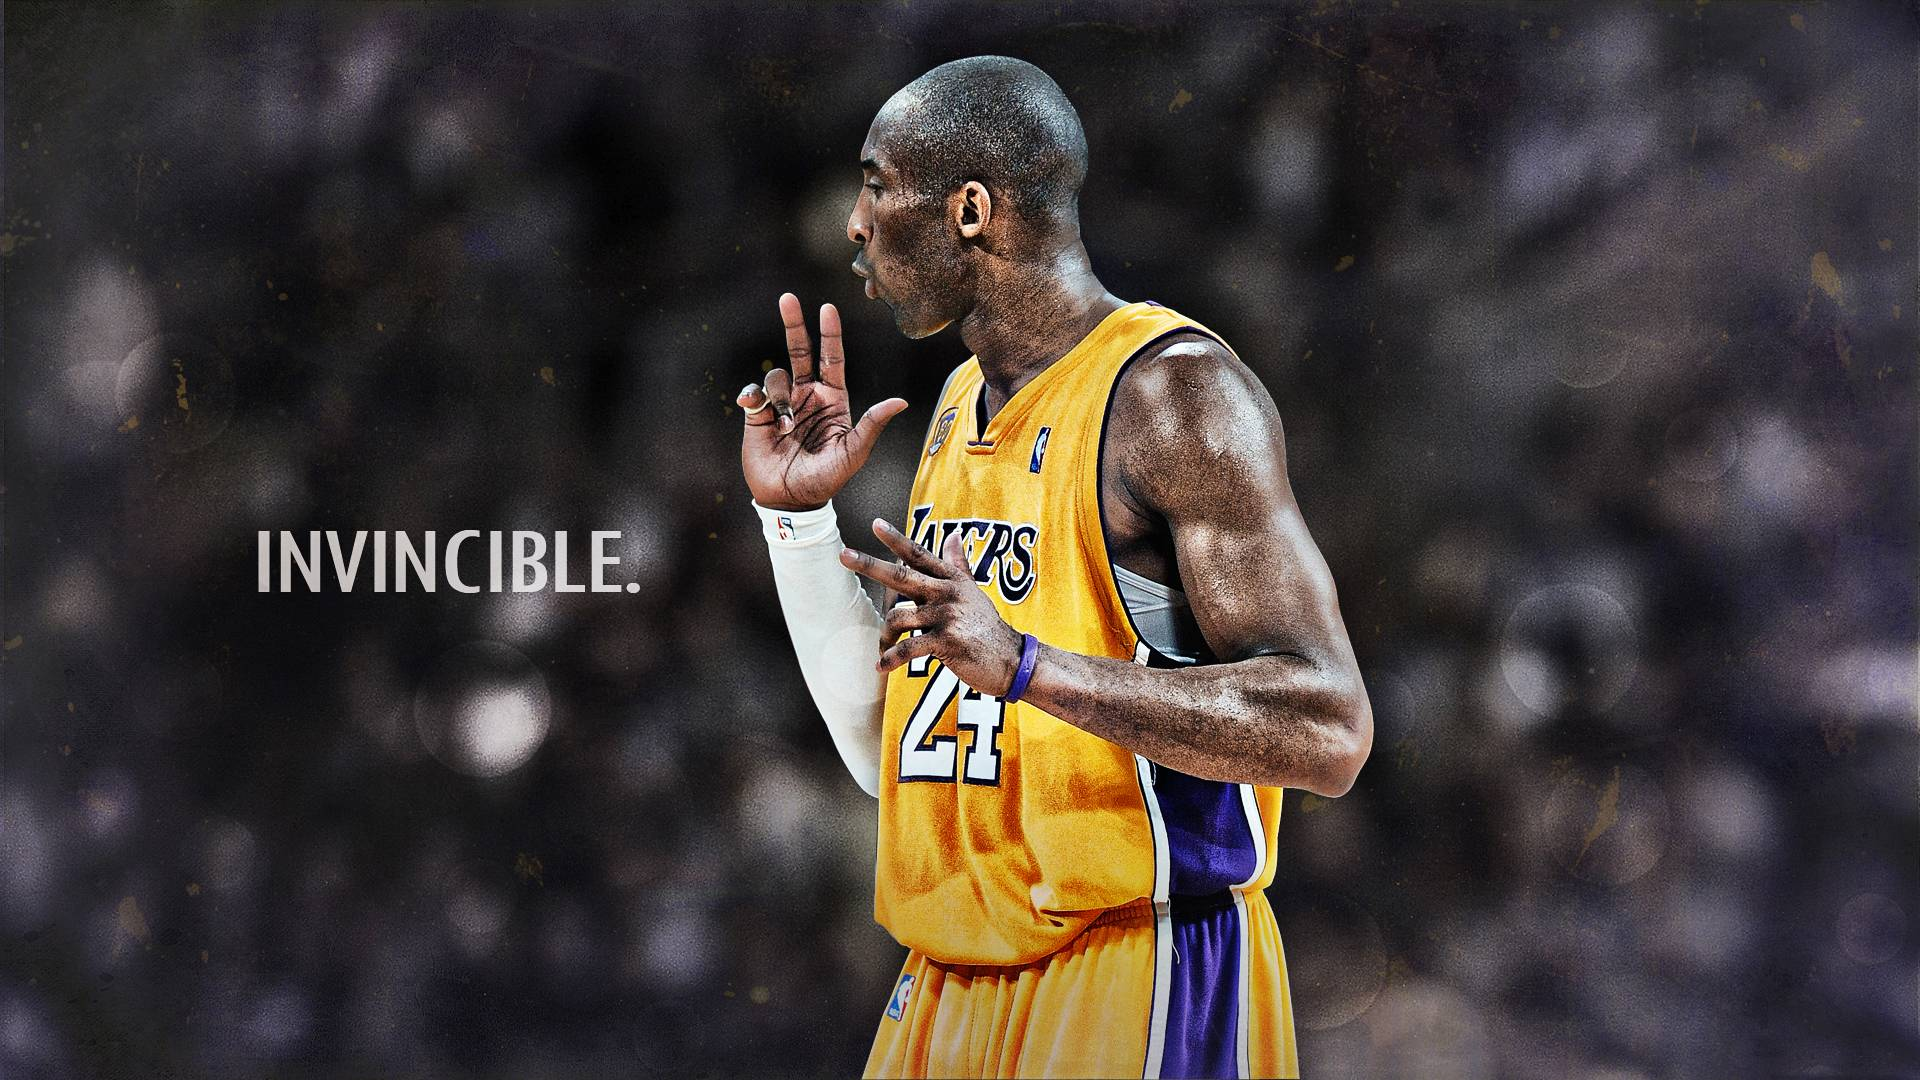 Kobe Bryant HD Wallpaper | Background Image | 1920x1080 | ID:776014 - Wallpaper Abyss